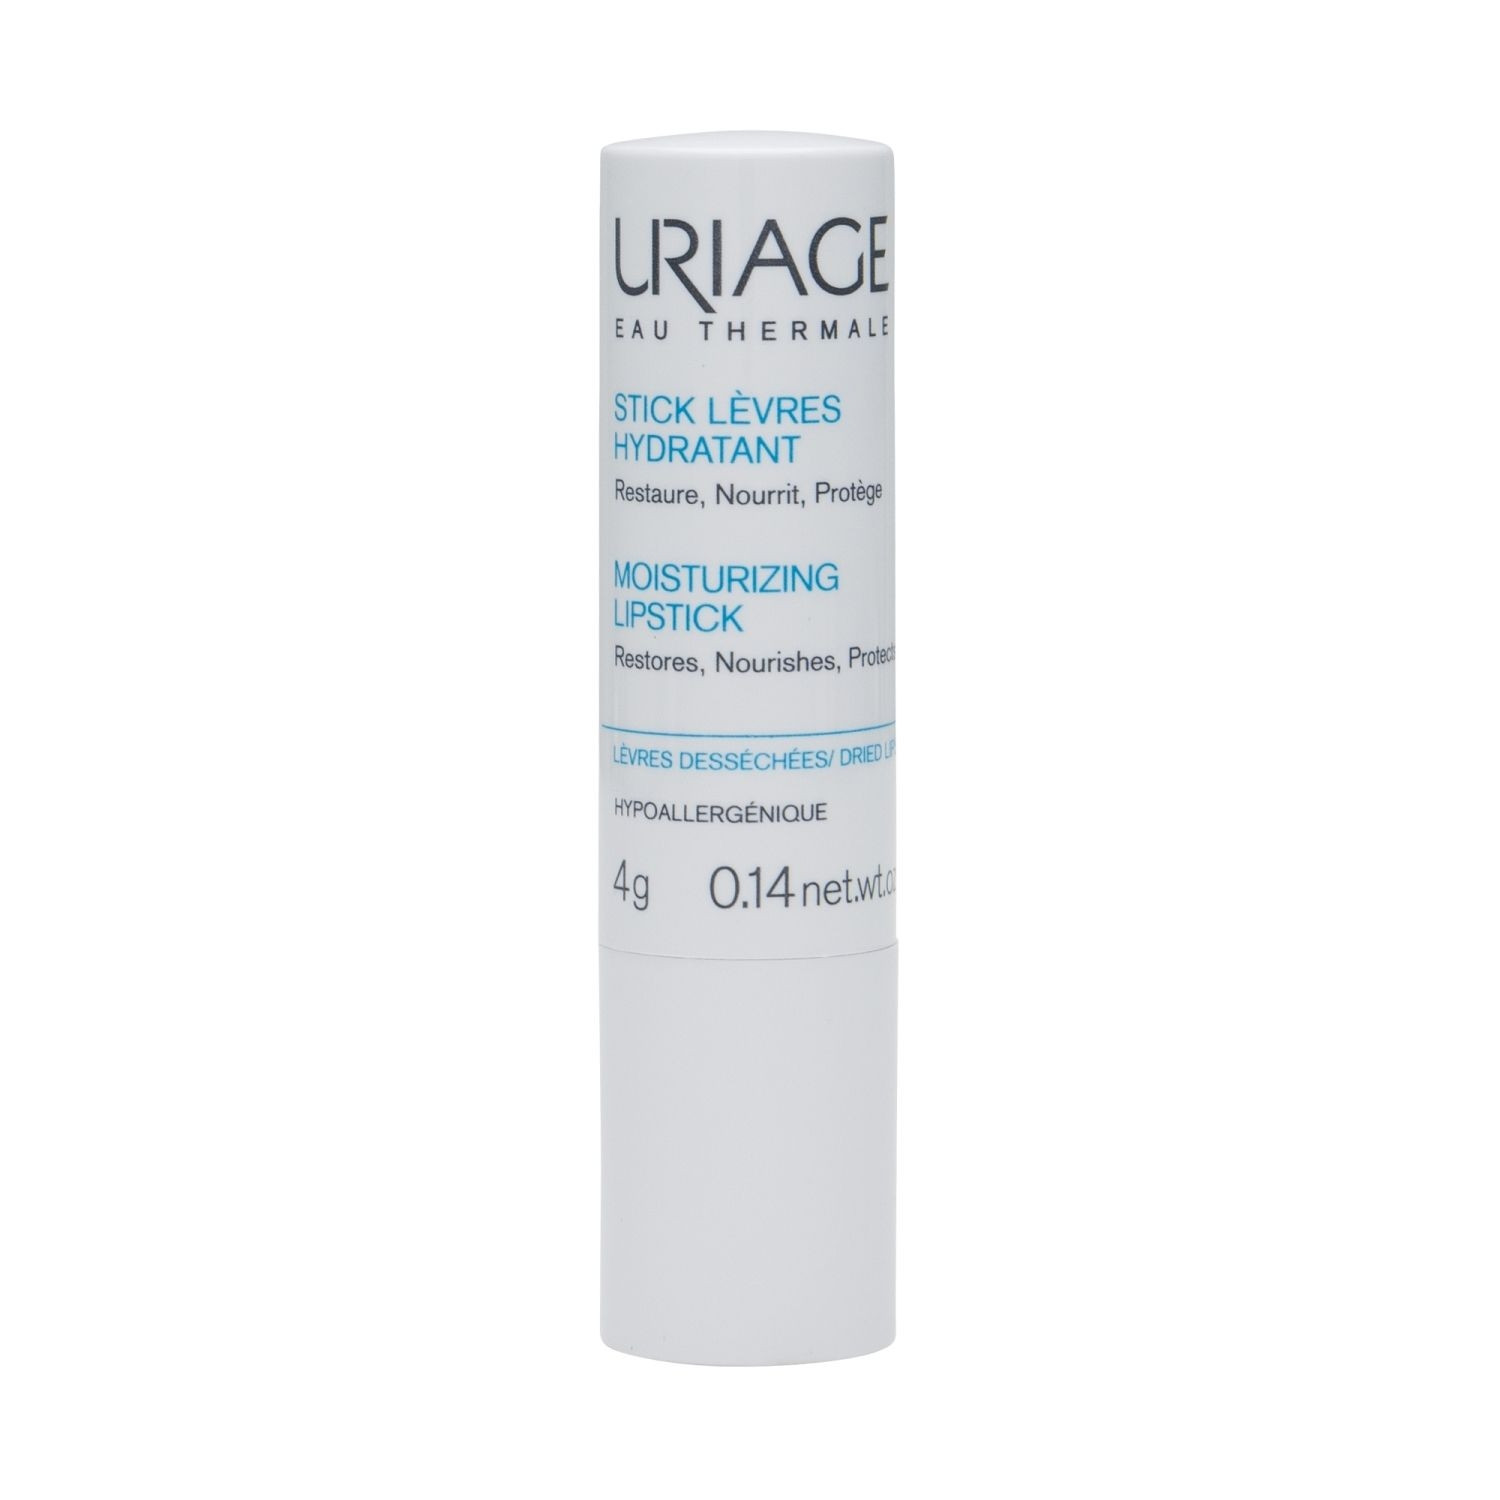 URIAGE STICK LEVRES LIP STICK 4G